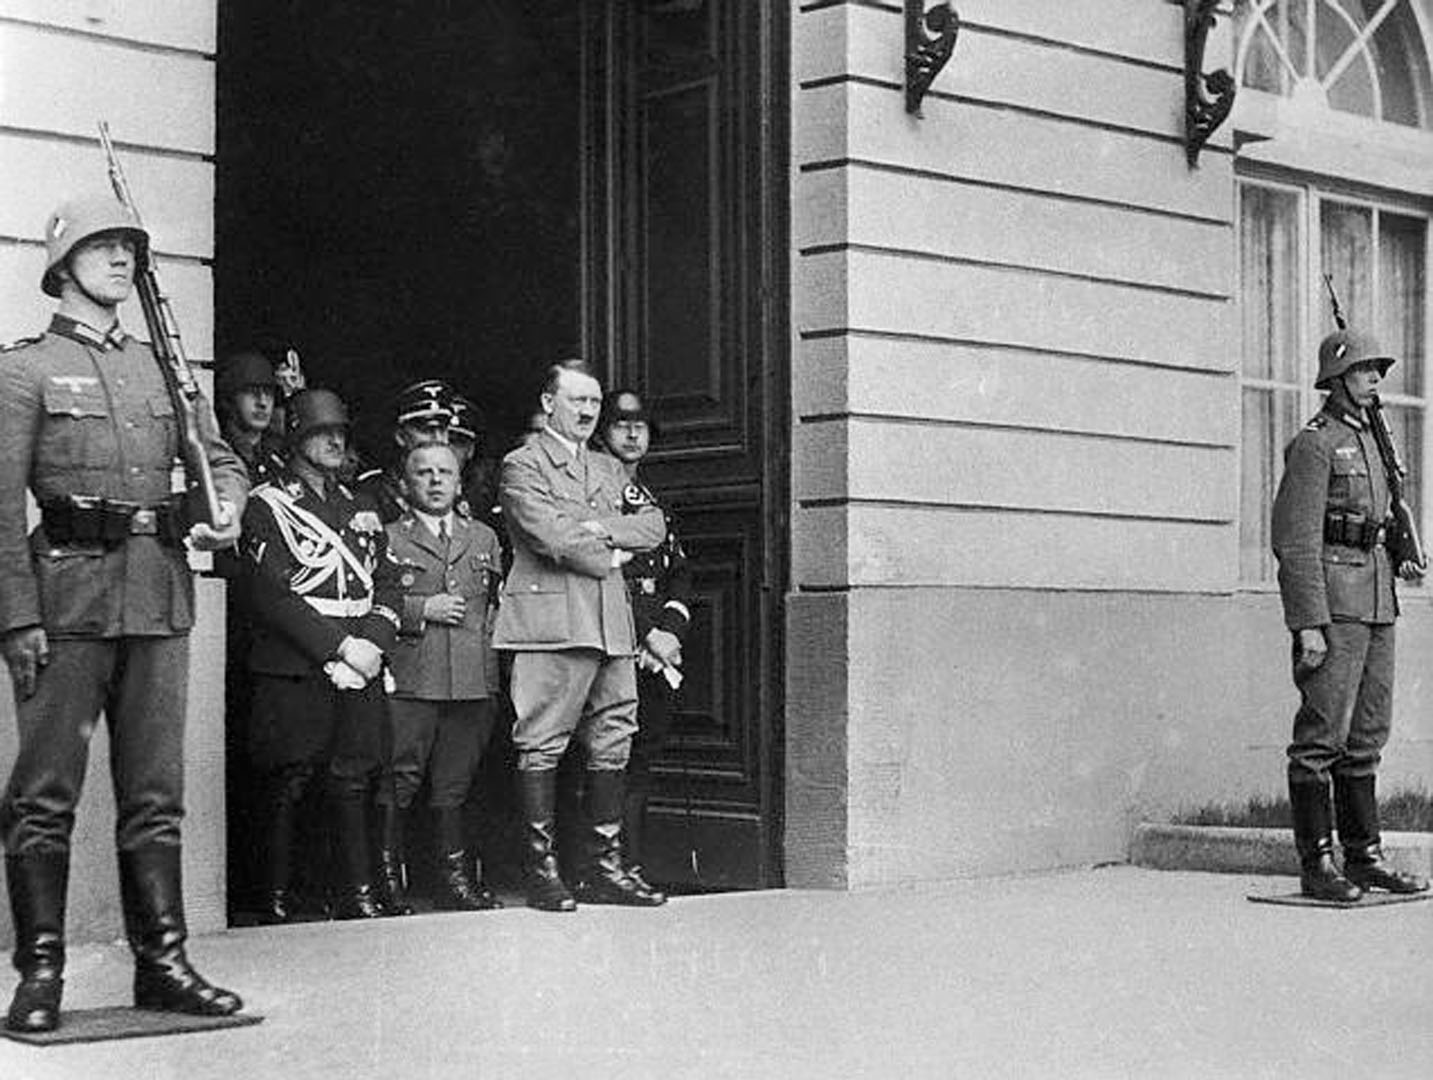 Hitler And Himmler At The Doorway Of The Chancellory In Berlin